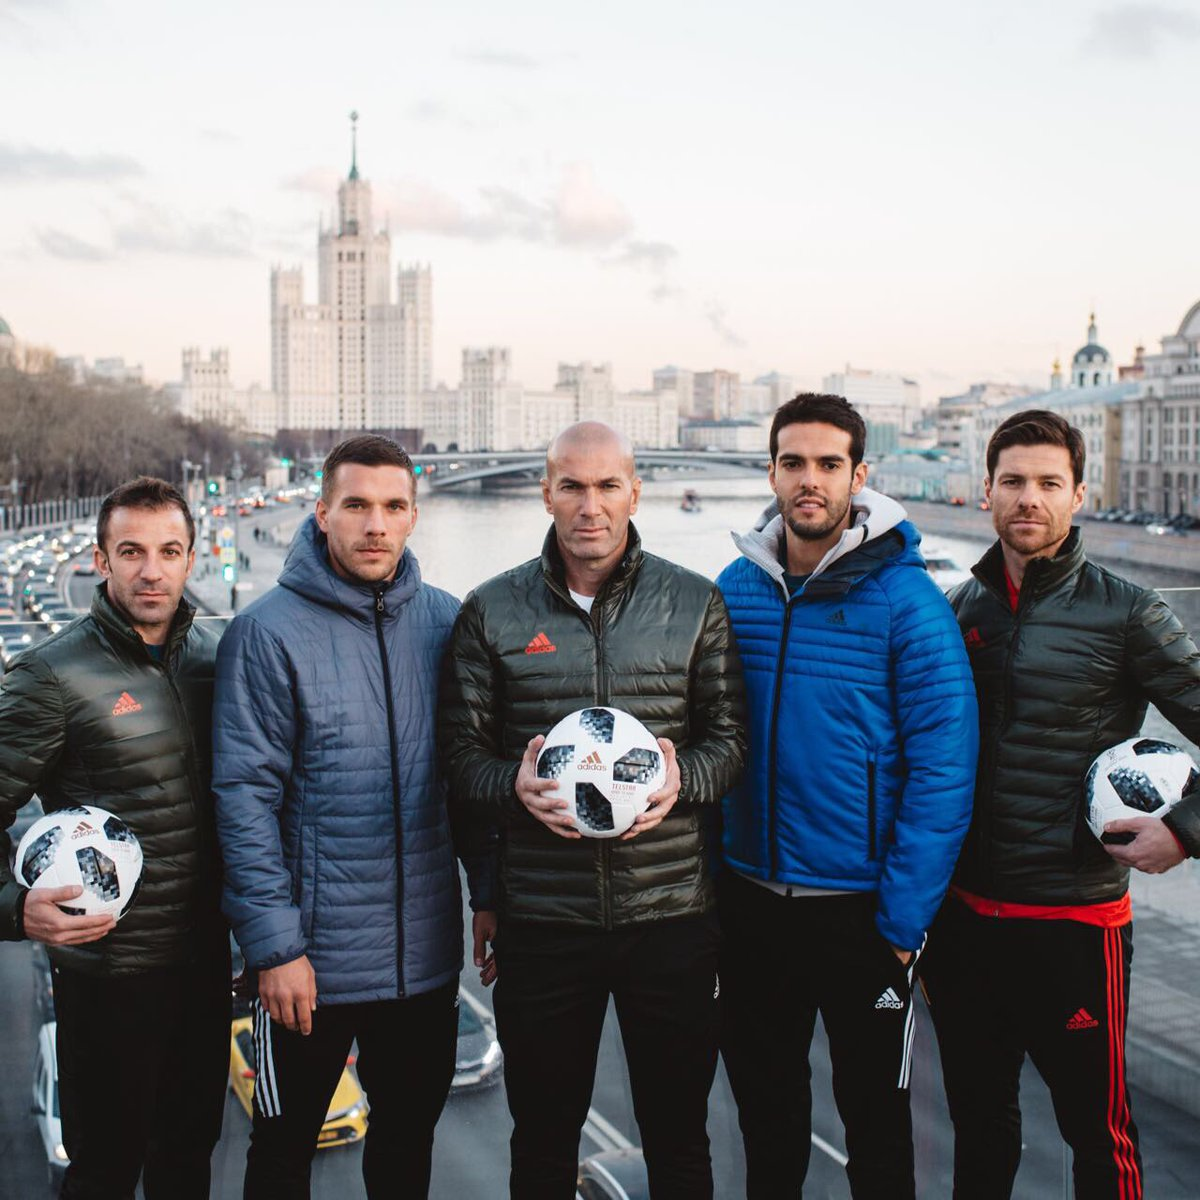 5 World Champions, 3 stripes and one perfect ball. Welcome #Telstar18 ⚽️👌🏼 #HereToCreate https://t.co/MOp2Oo7yvl